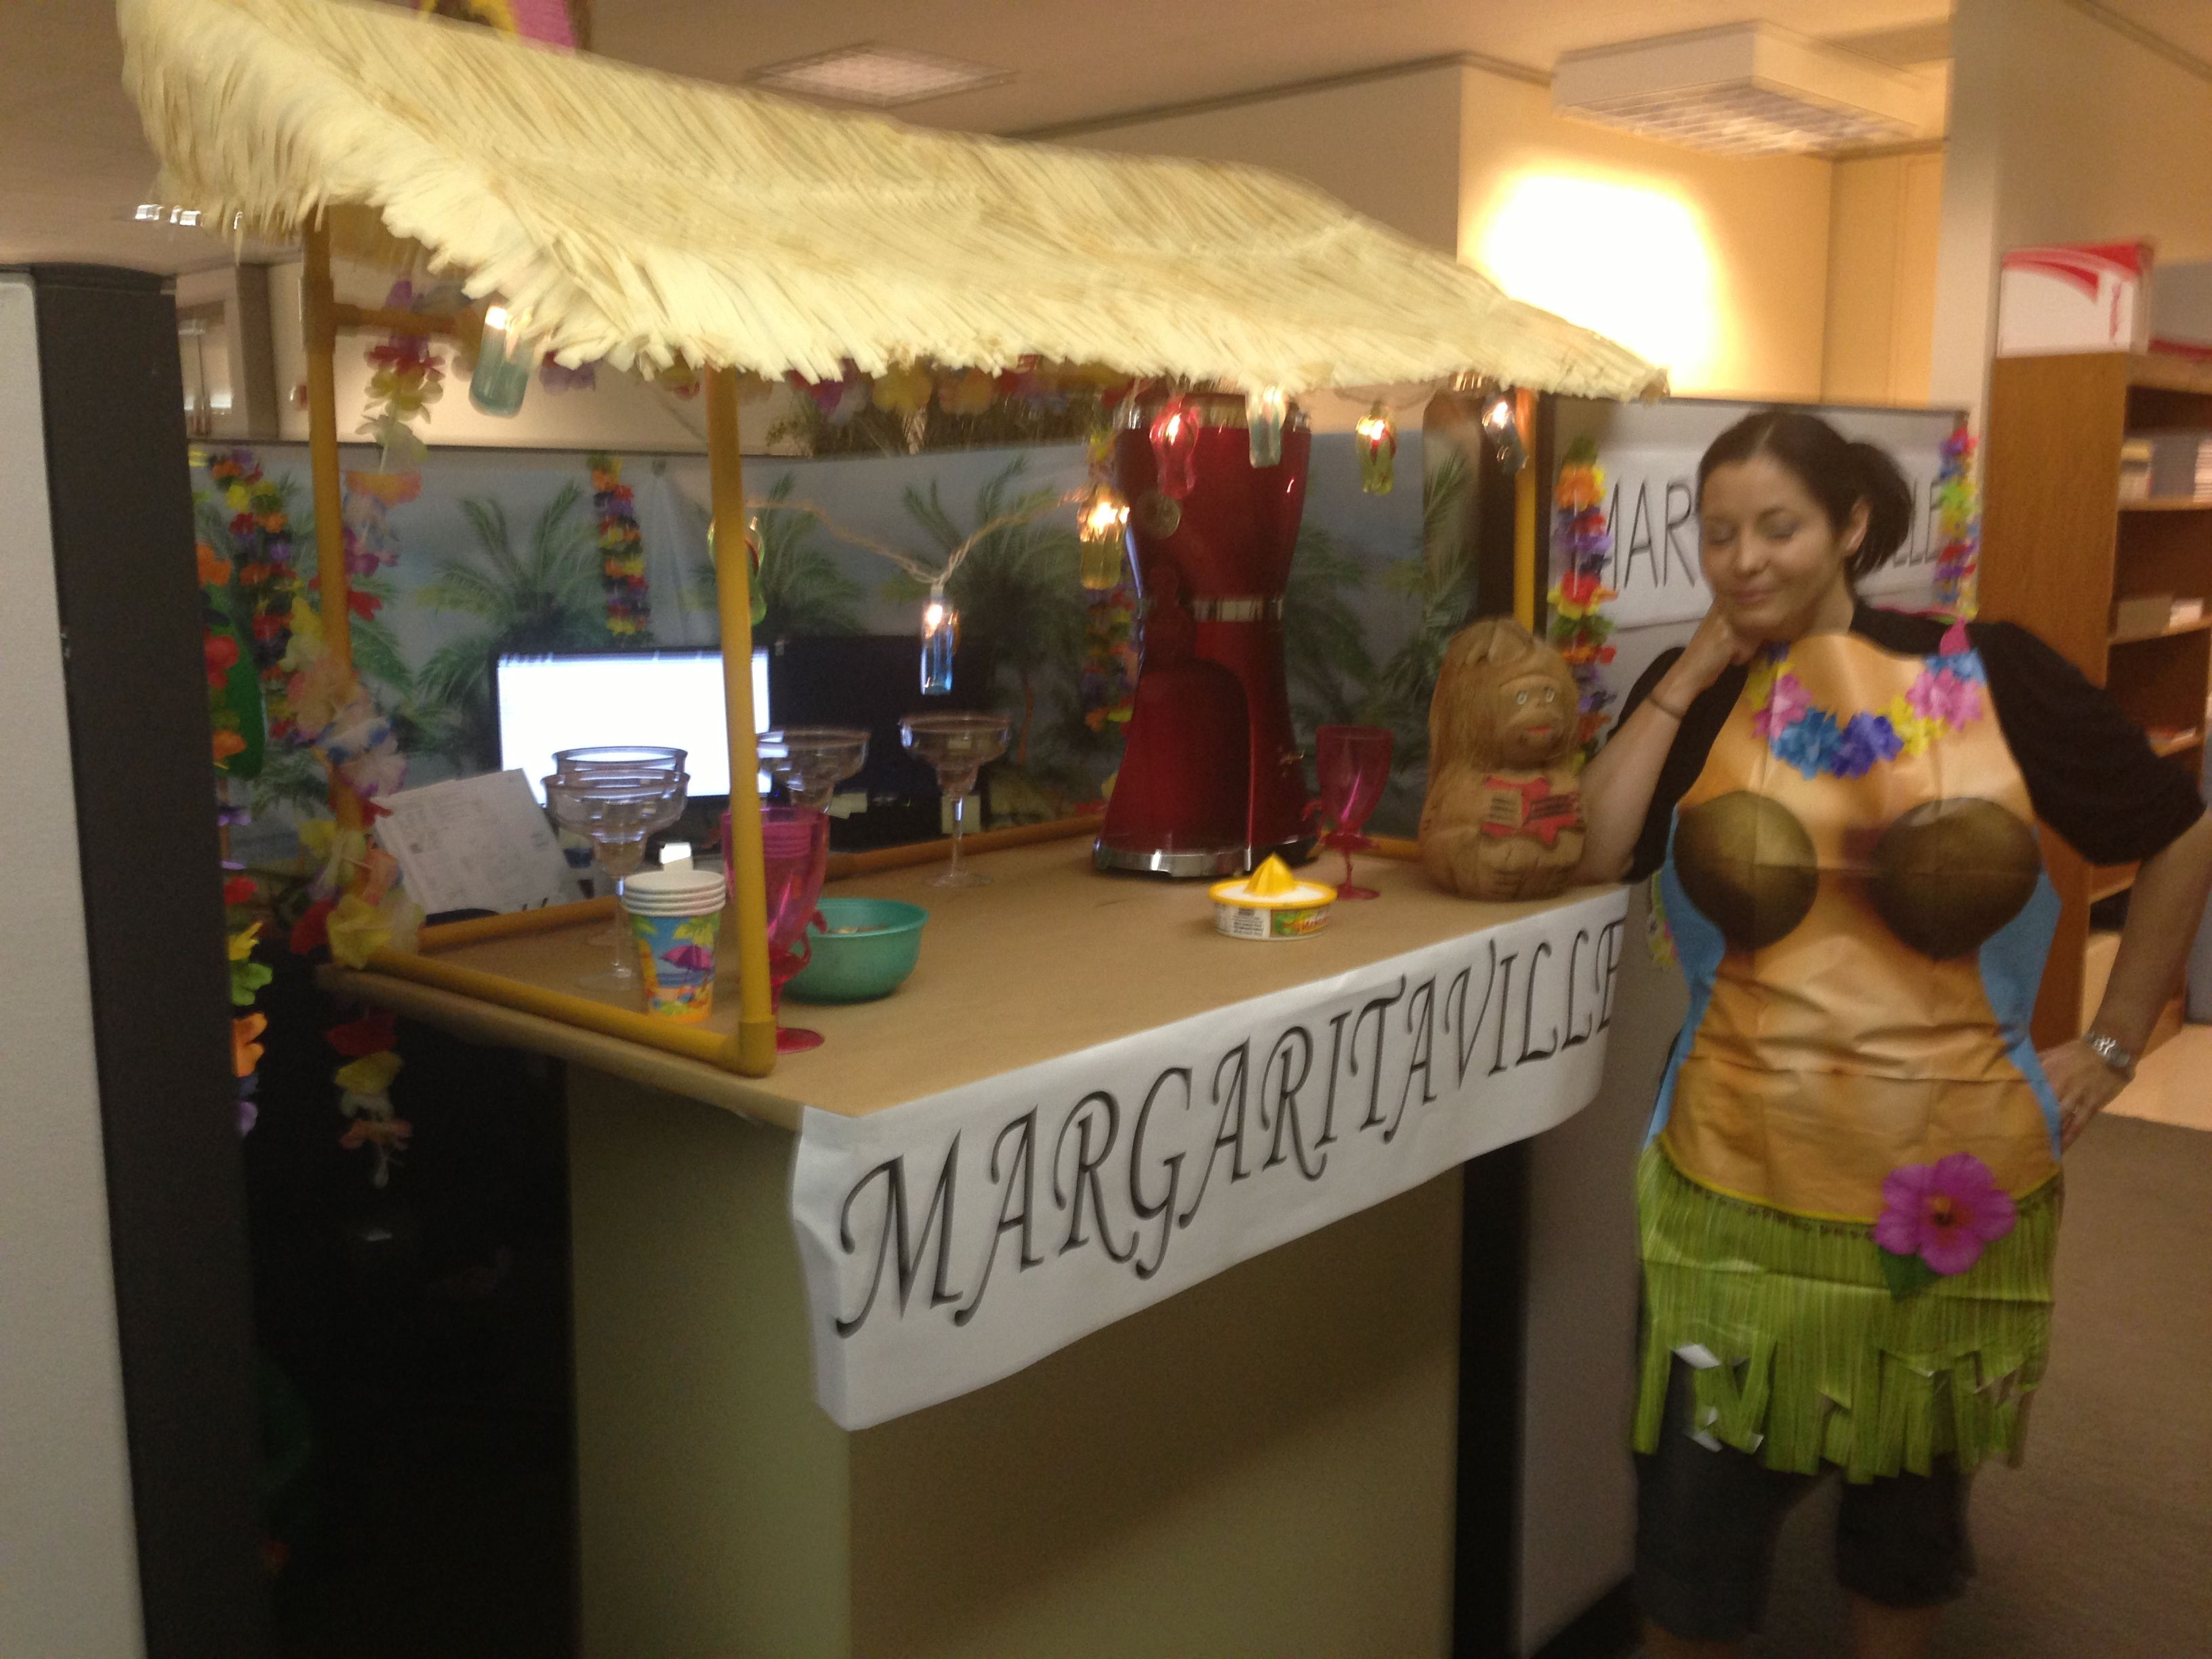 Attractive Cubicle Decorating Ideas Theme Part - 1: MargaritaVille Themed Cubicle Decoration